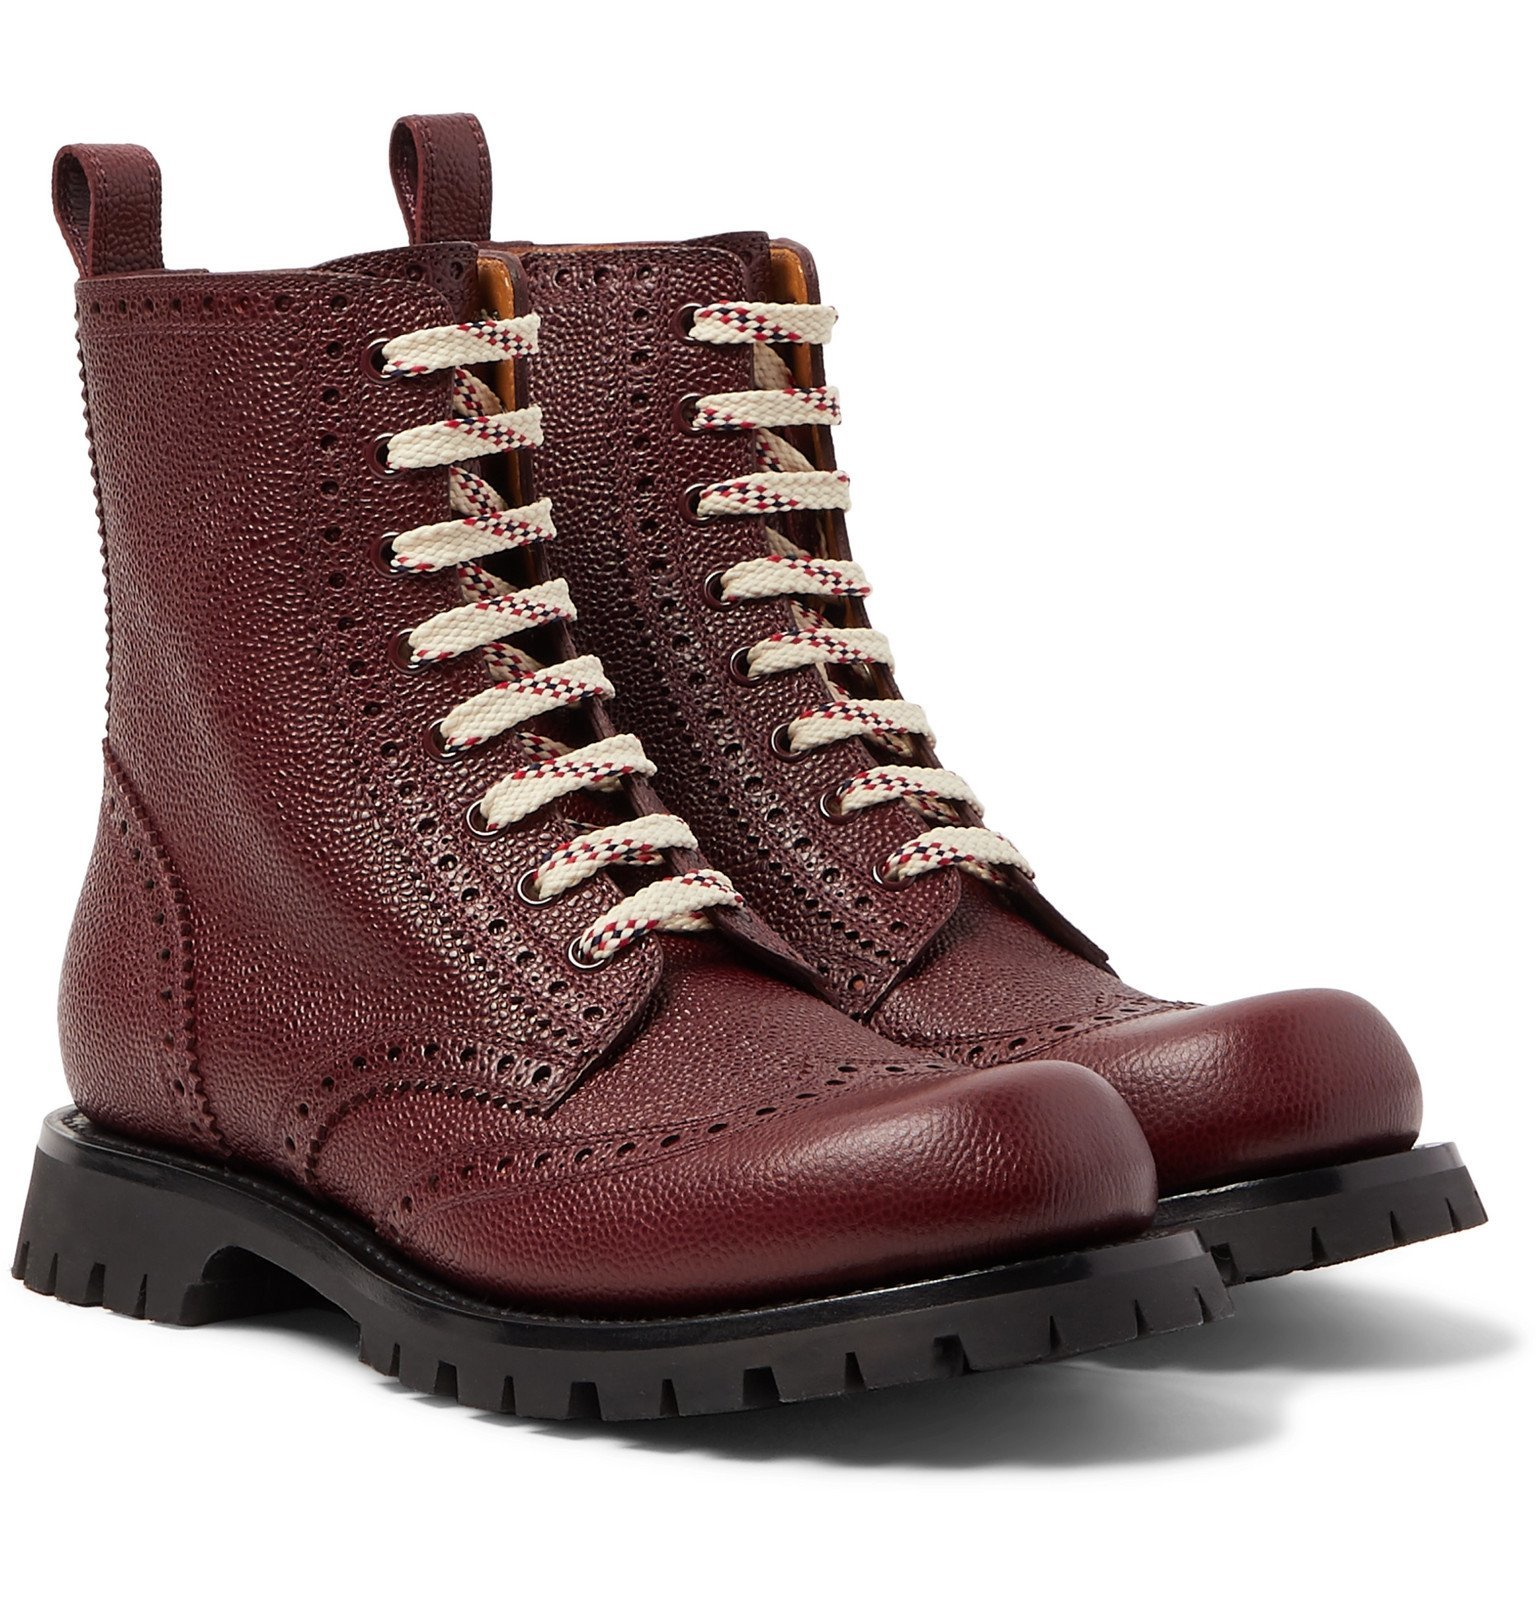 Photo: Gucci - New Arley Pebble-Grain Leather Brogue Boots - Burgundy